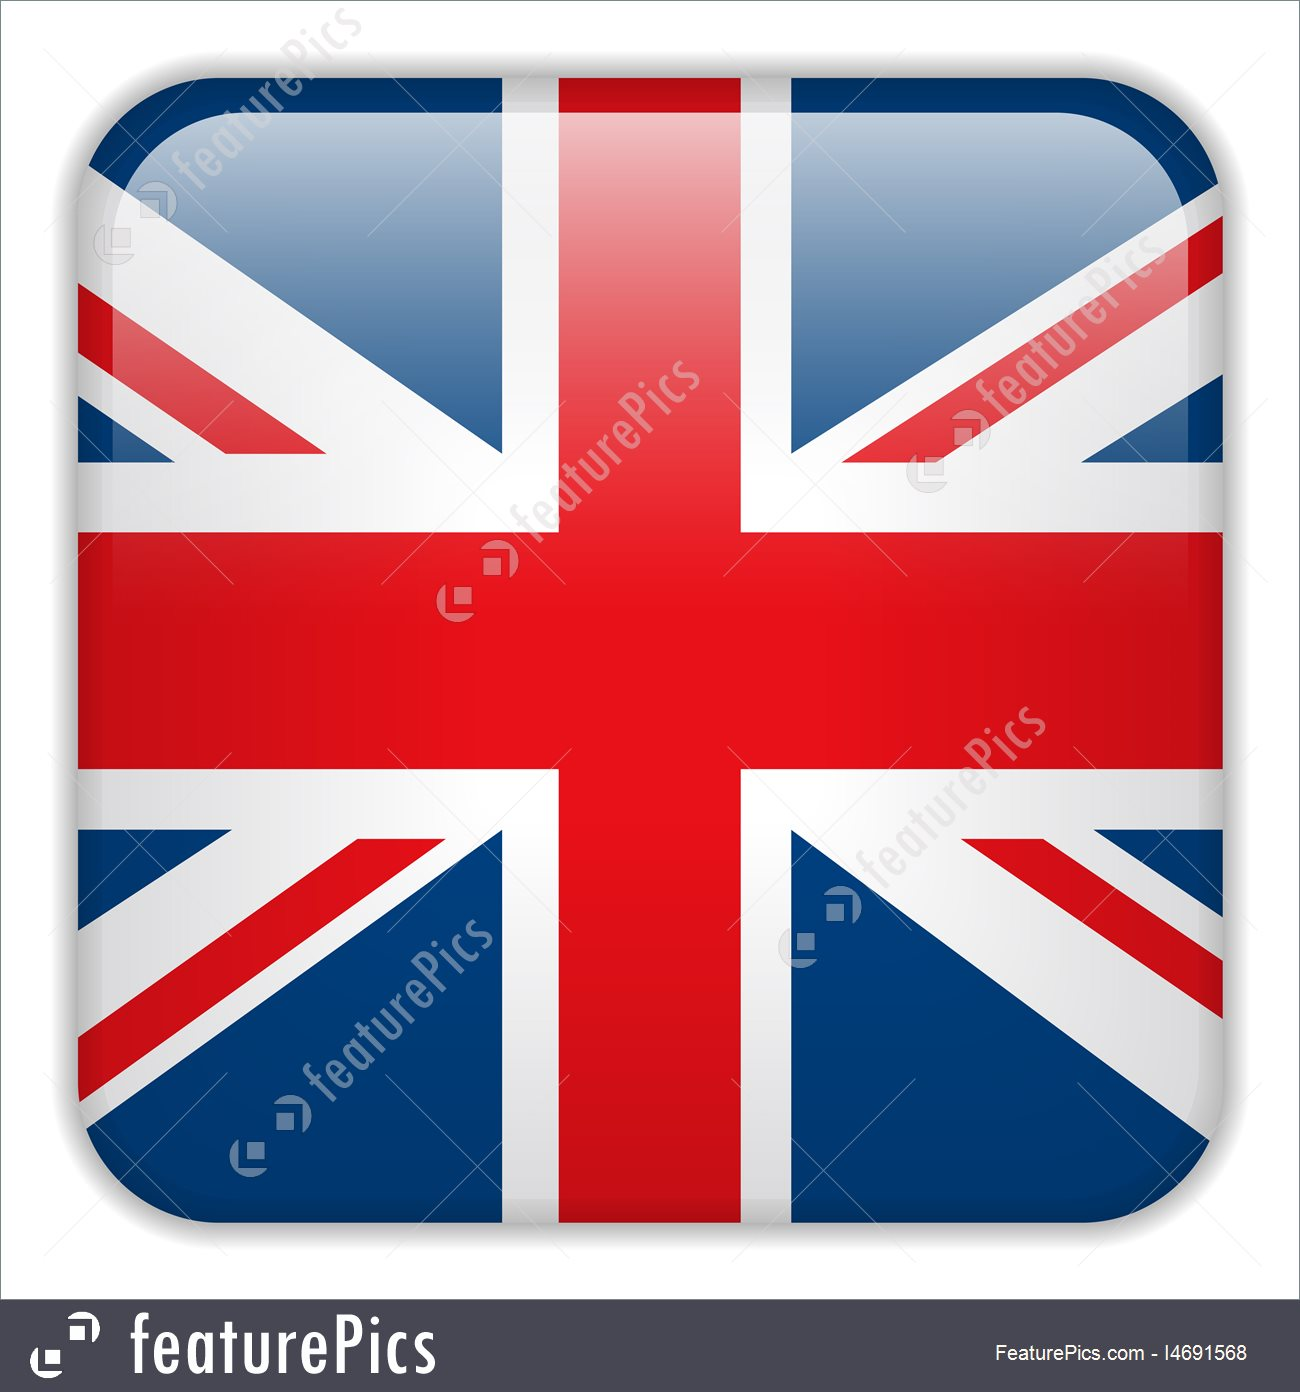 1300x1392 United Kingdom England Flag Smartphone Application Square Button